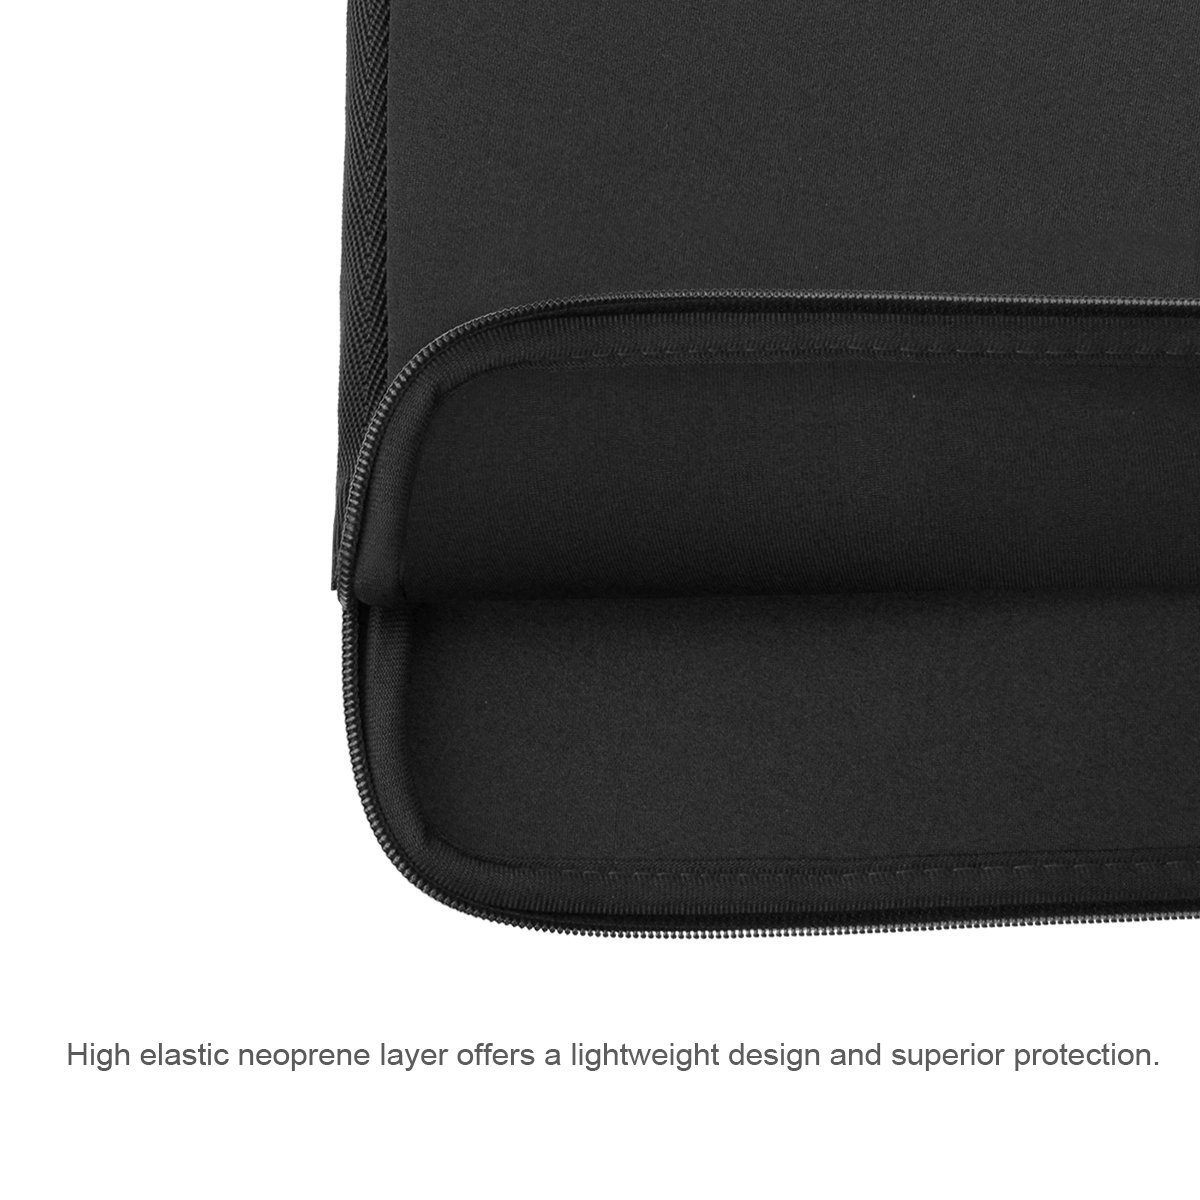 Dark Blue Arvok 13-14 Inch Laptop Sleeve Multi-color /& Size Choices Case//Water-resistant Neoprene Notebook Computer Pocket Tablet Briefcase Carrying Bag//Pouch Skin Cover For Acer//Asus//Dell//Lenovo